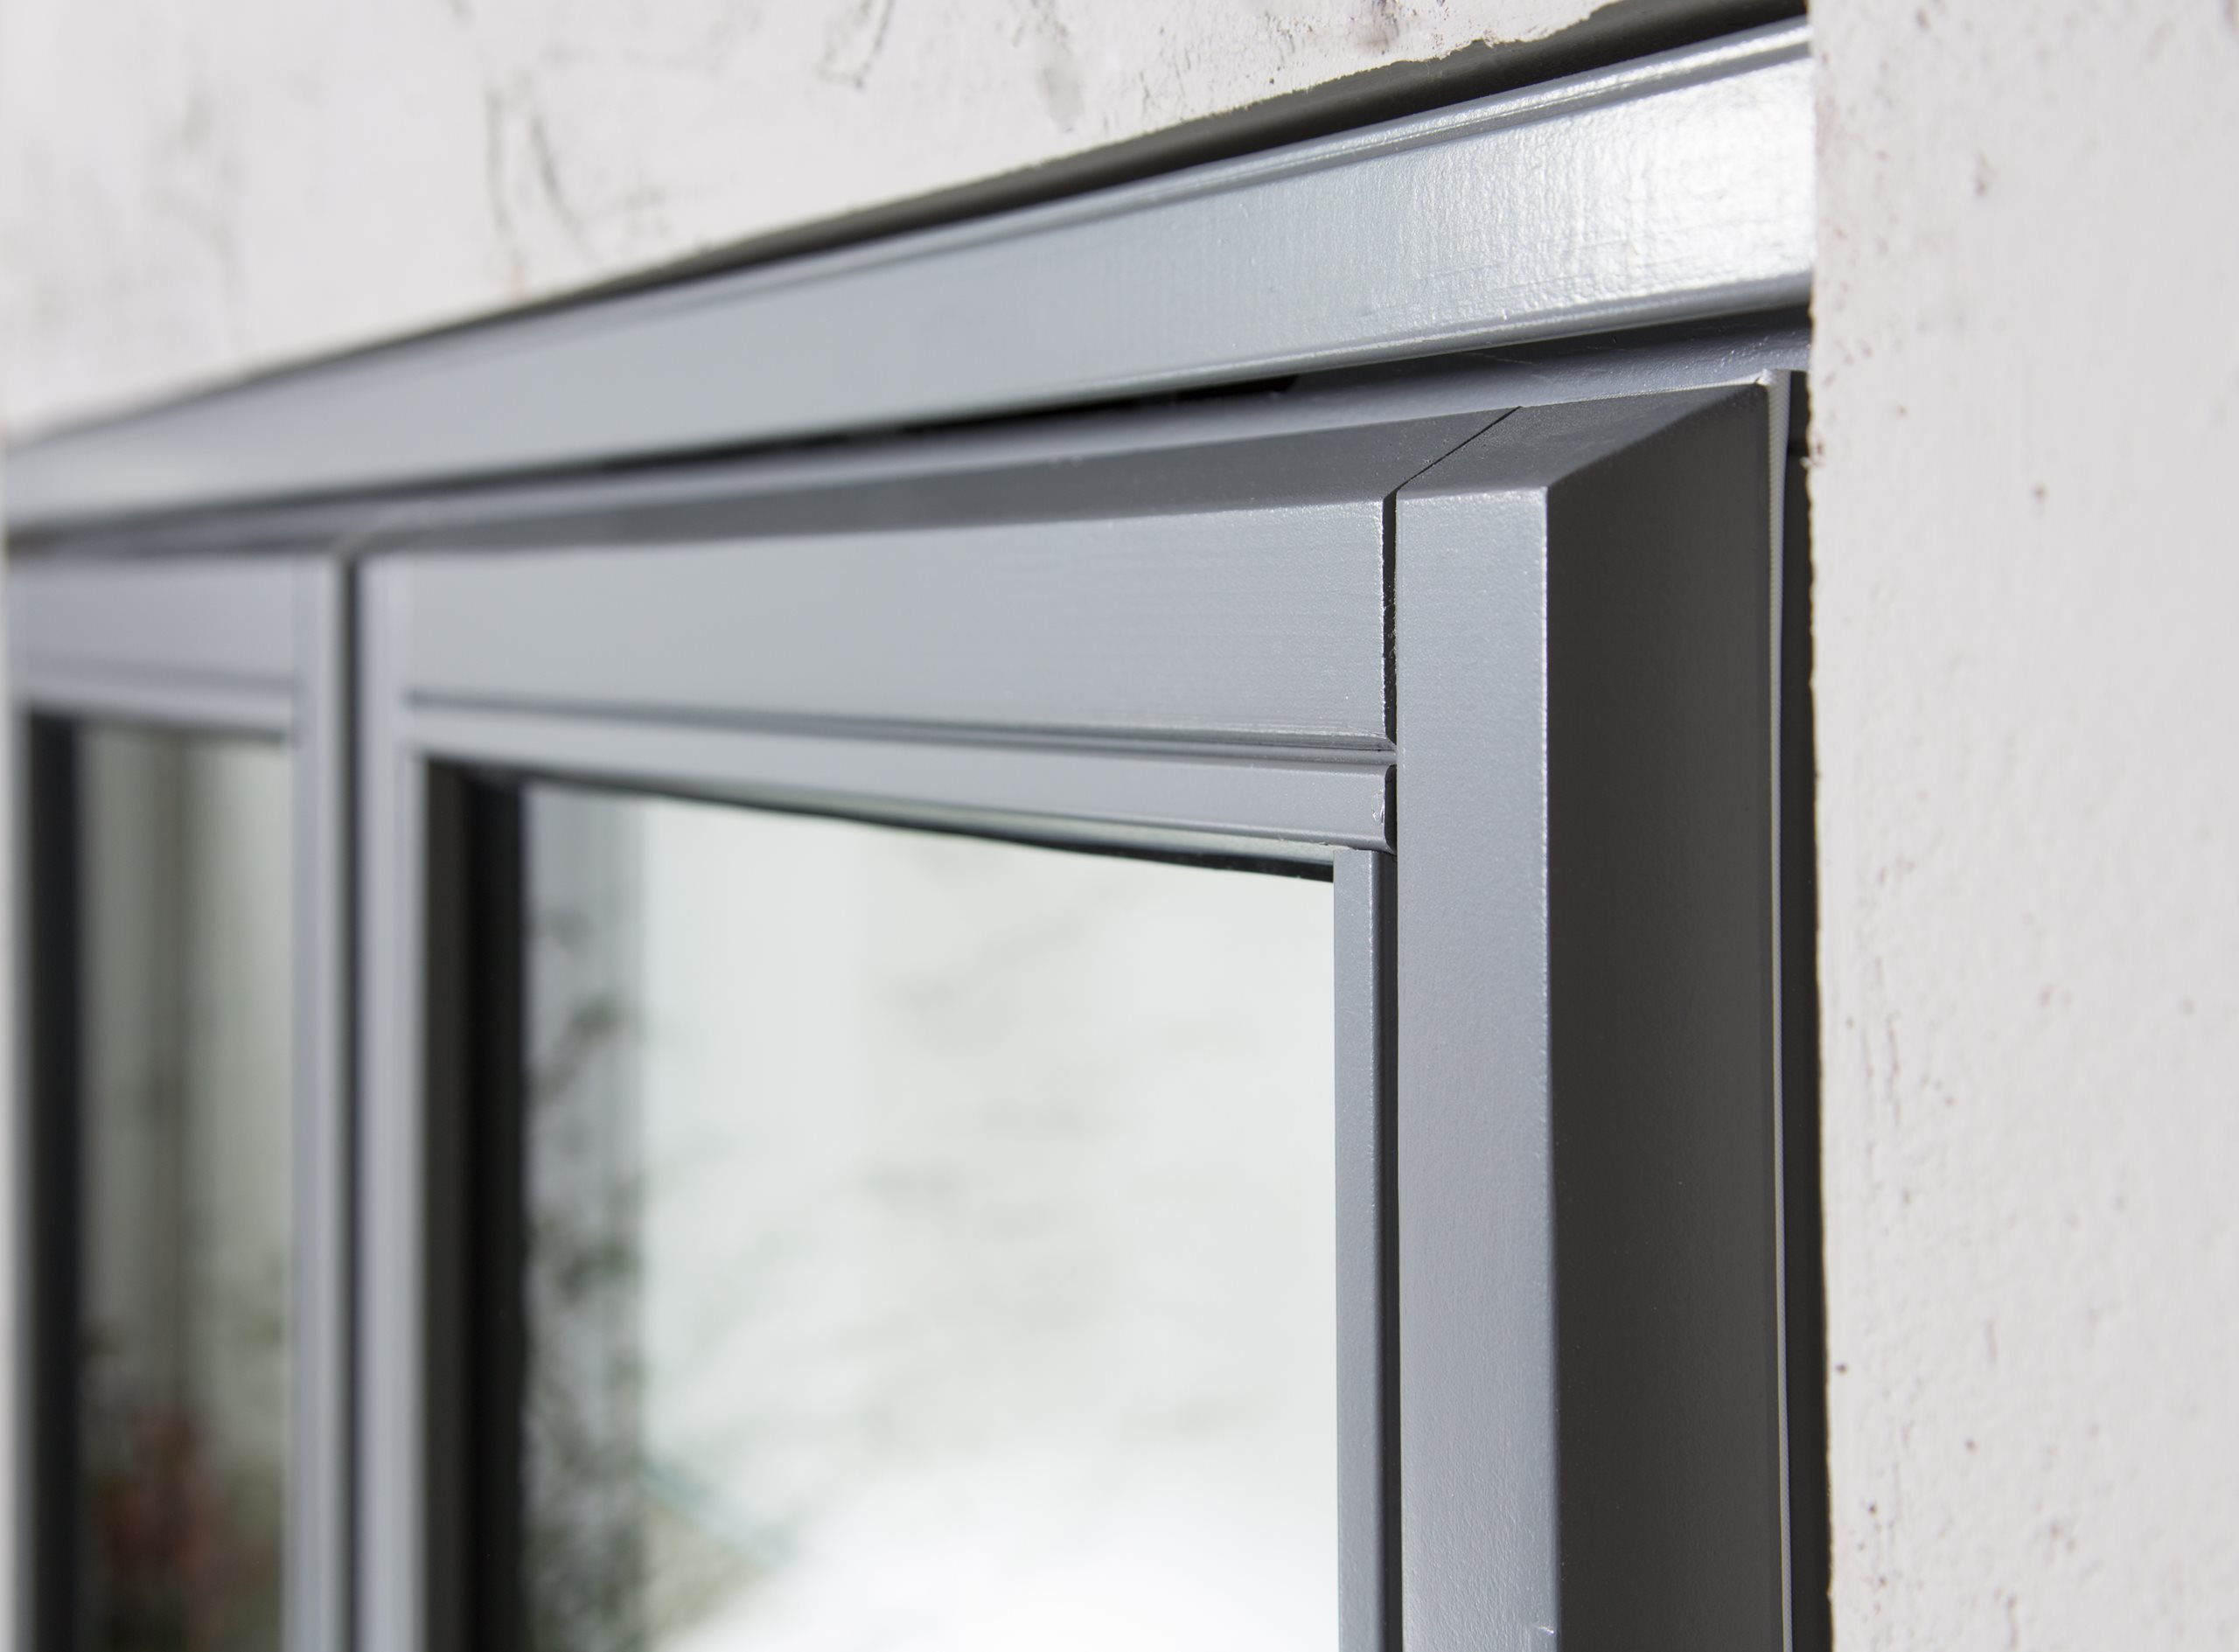 Confused about glazing?